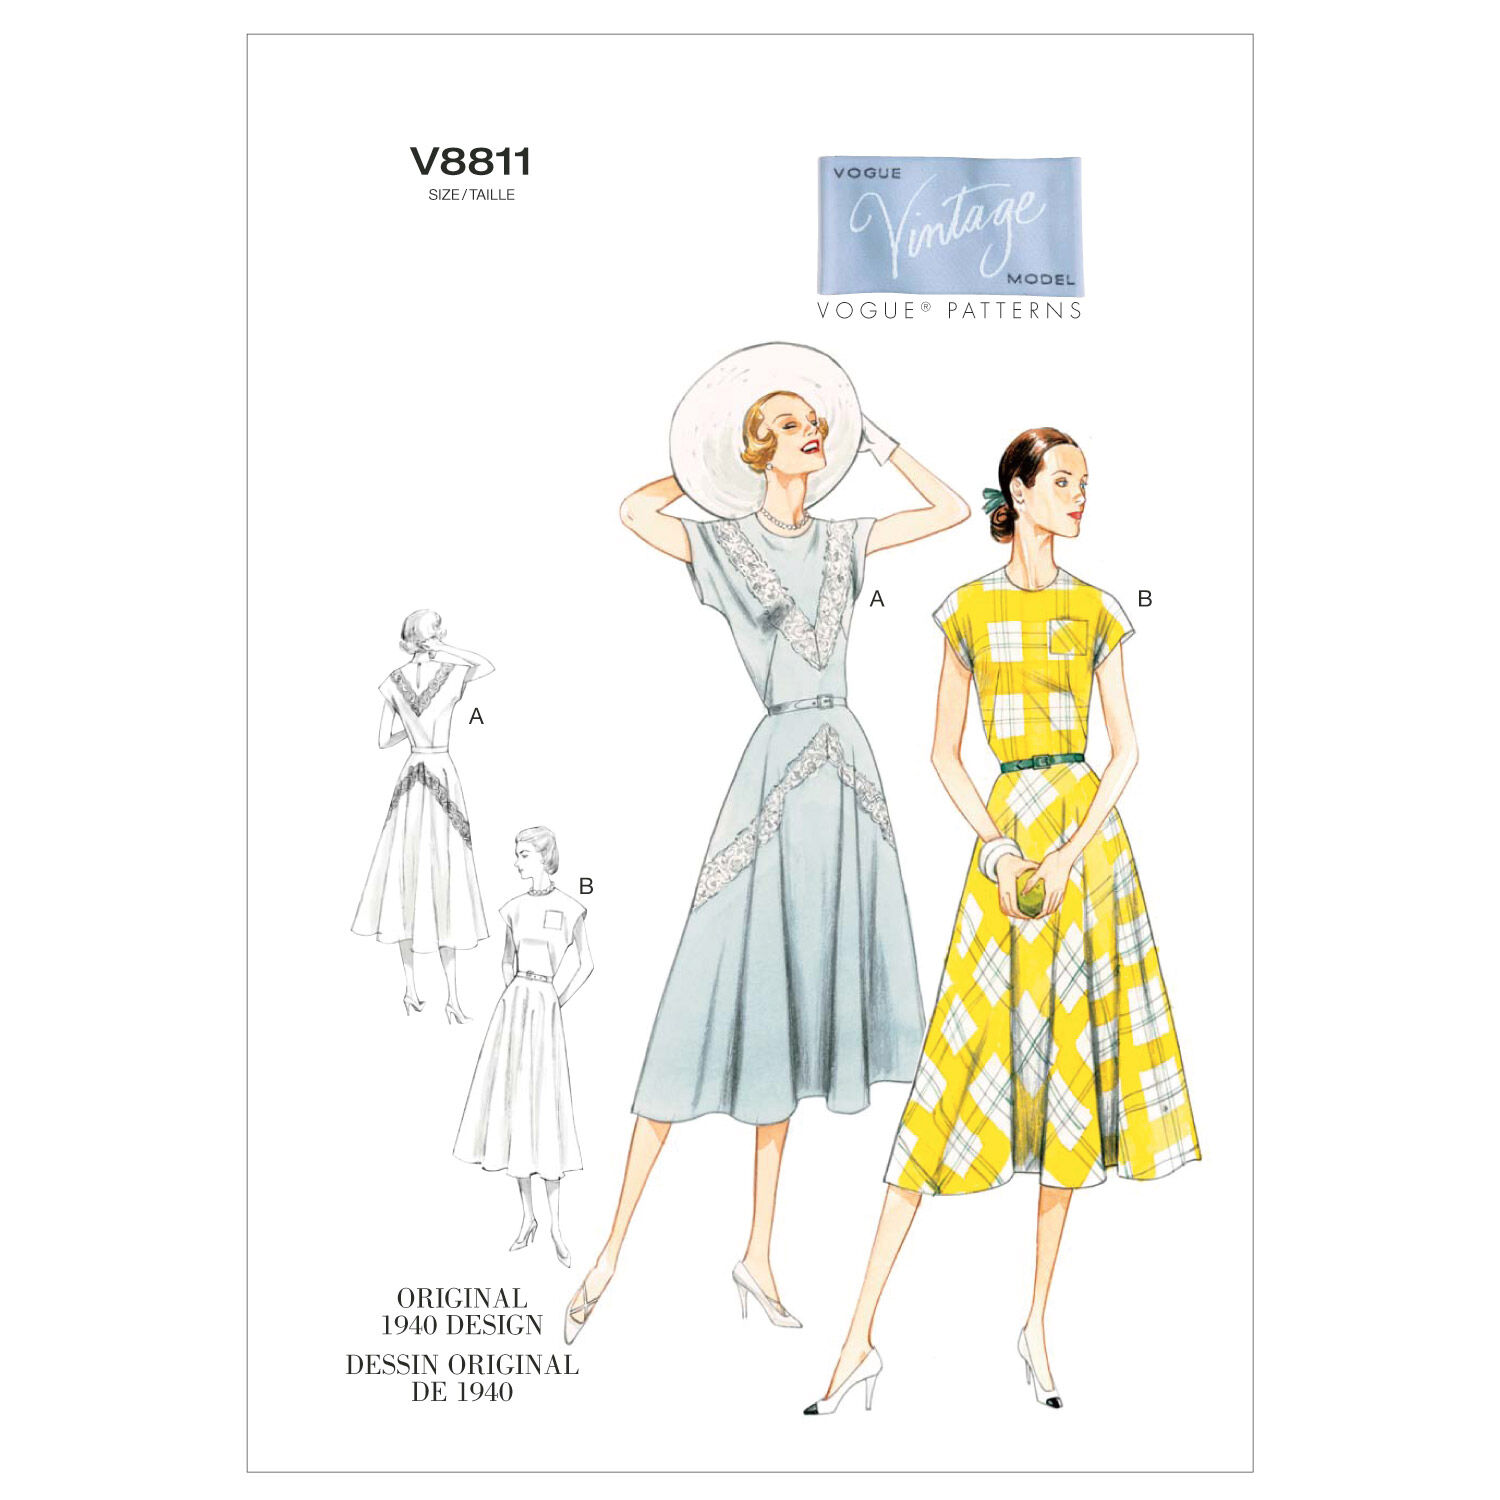 1950s Sewing Patterns | Dresses, Skirts, Tops, Mens Vogue Patterns Misses Dress - V8811 $18.00 AT vintagedancer.com